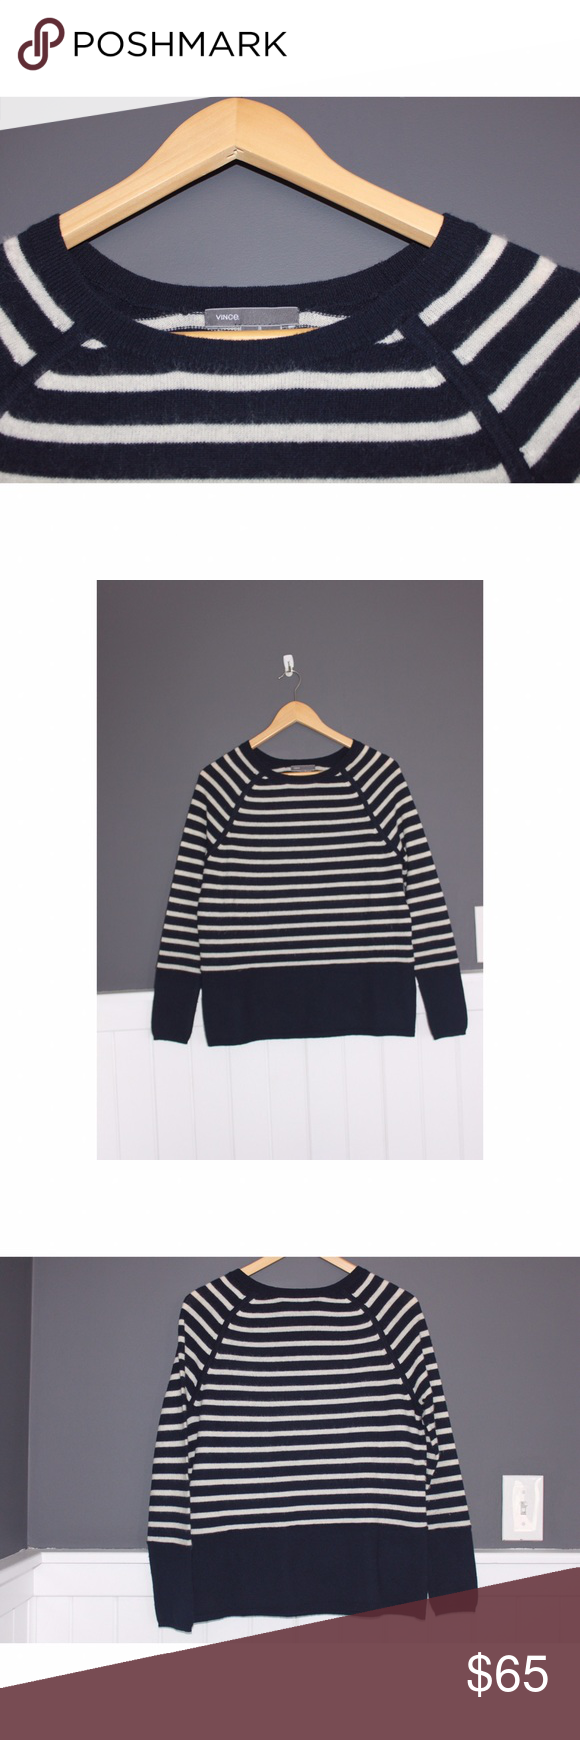 VINCE cashmere sweater Beautiful sweater in excellent condition from VINCE! this is a relatively lightweight cashmere, so it would be a lovely layering piece going into spring! Vince Sweaters Crew & Scoop Necks